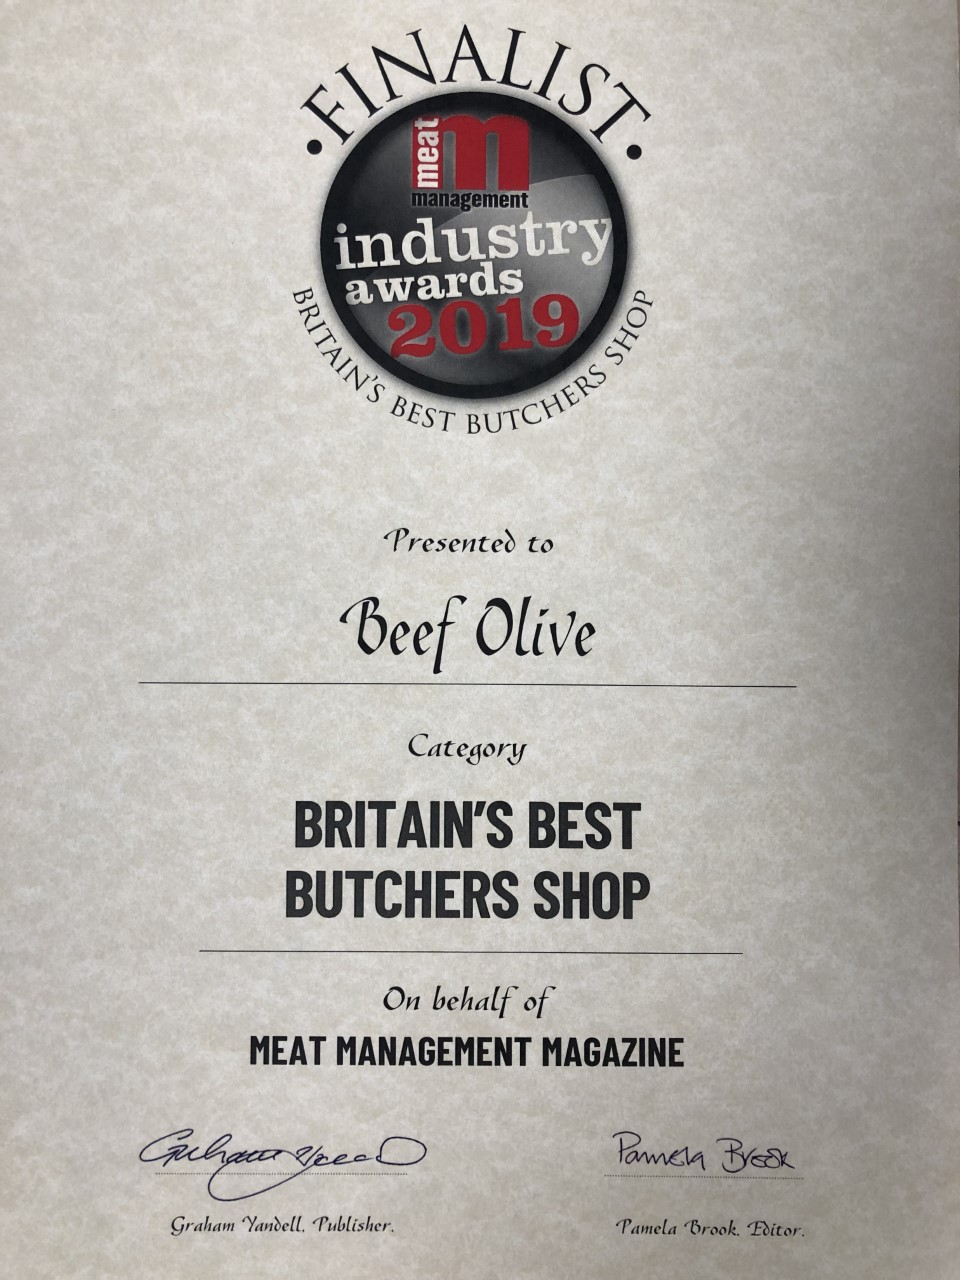 Britains Best Butchers Shop - Finalist